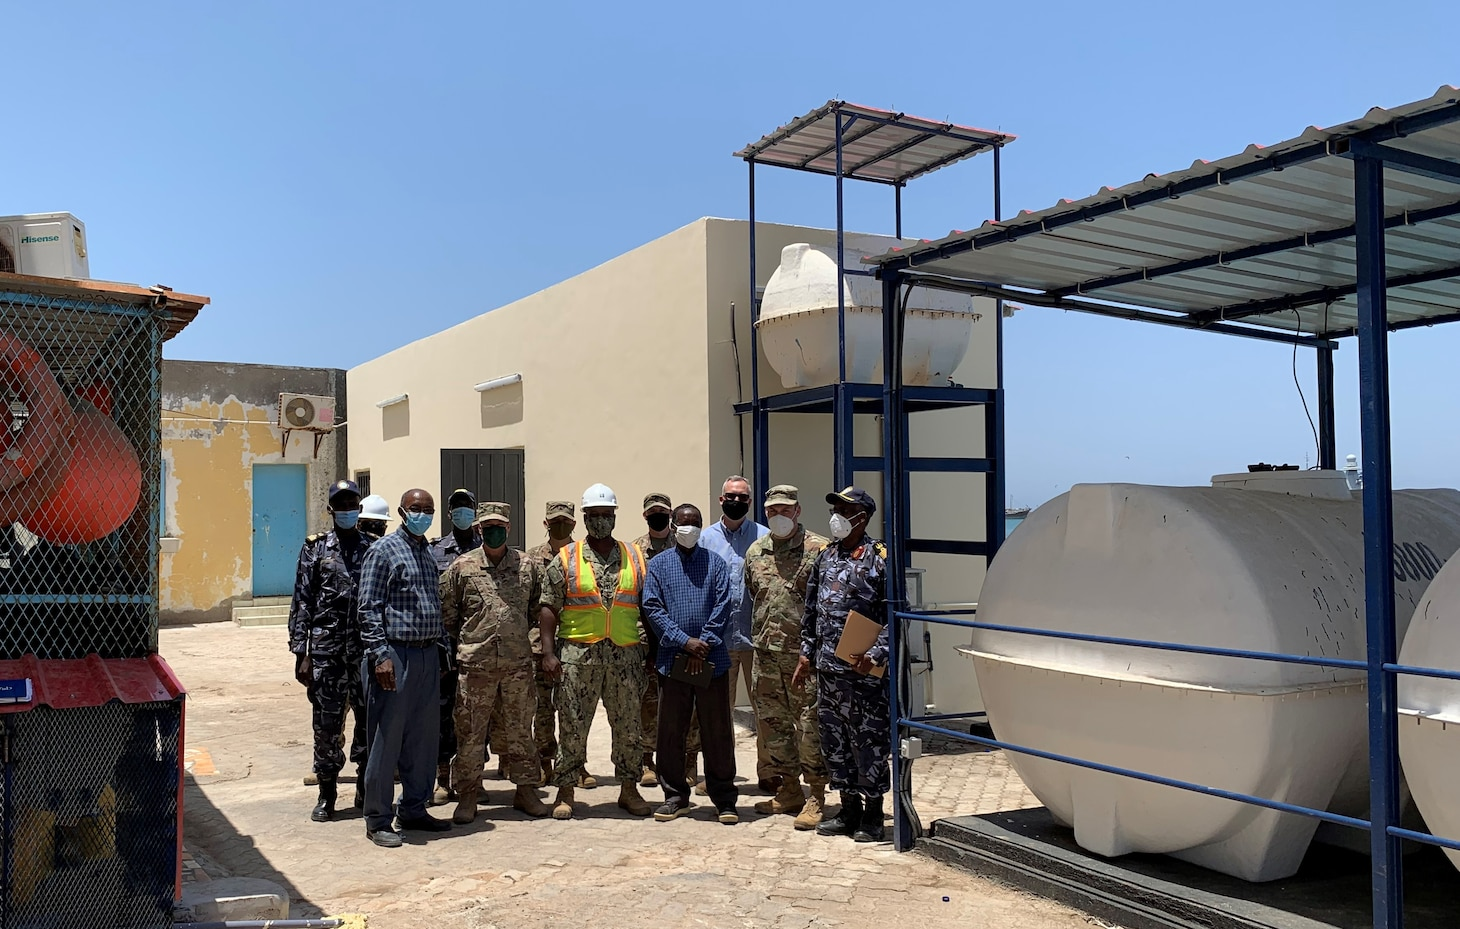 Service members from Combined Task Force Horn of Africa (CJTF-HOA) Naval Facilities Command and the U.S. Embassy, Djibouti conduct final walk-though and turn-over of the newly constructed restroom facility, water storage system and maritime operations center conference room sponsored by U.S. Naval Forces Africa and constructed by the local Djiboutian contractor, TREMCO LLC. U.S. Sixth Fleet, headquartered in Naples, Italy, conducts the full spectrum of joint and naval operations, often in concert with allied and interagency partners, in order to advance U.S. national interests and security and stability in Europe and Africa.